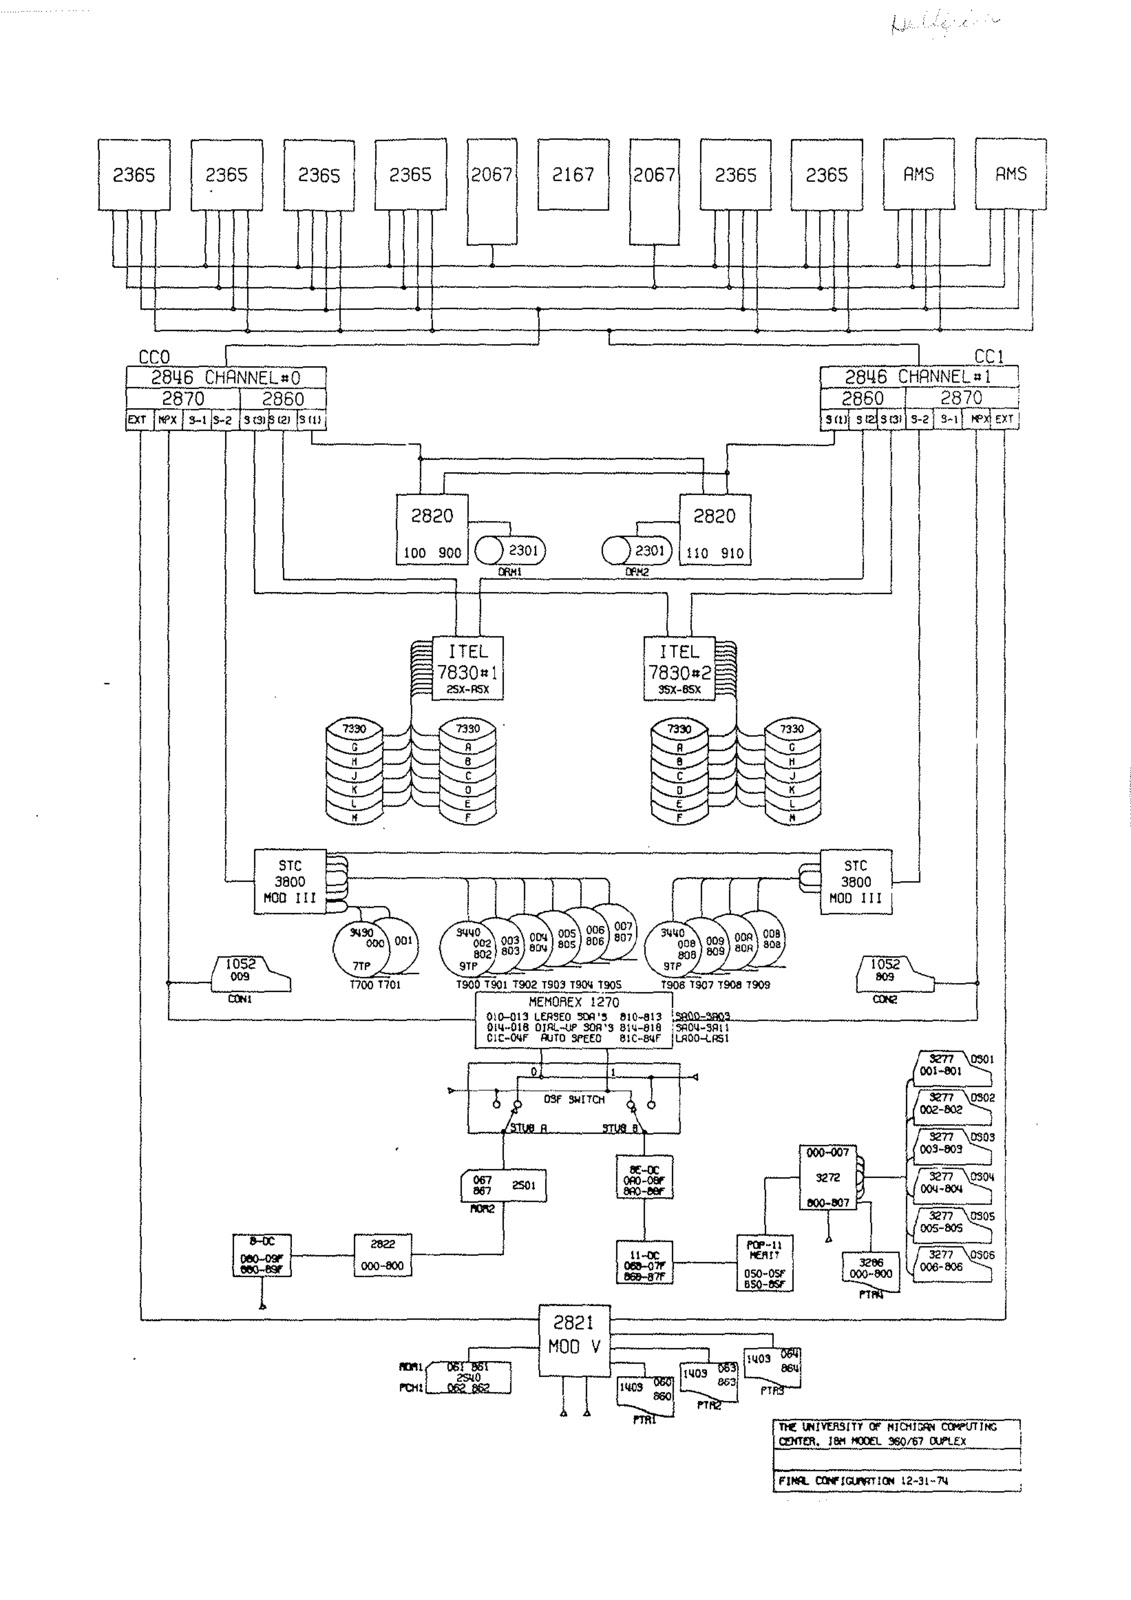 hight resolution of hardware configuration diagram for the ibm s 360 67 computer at u m in december